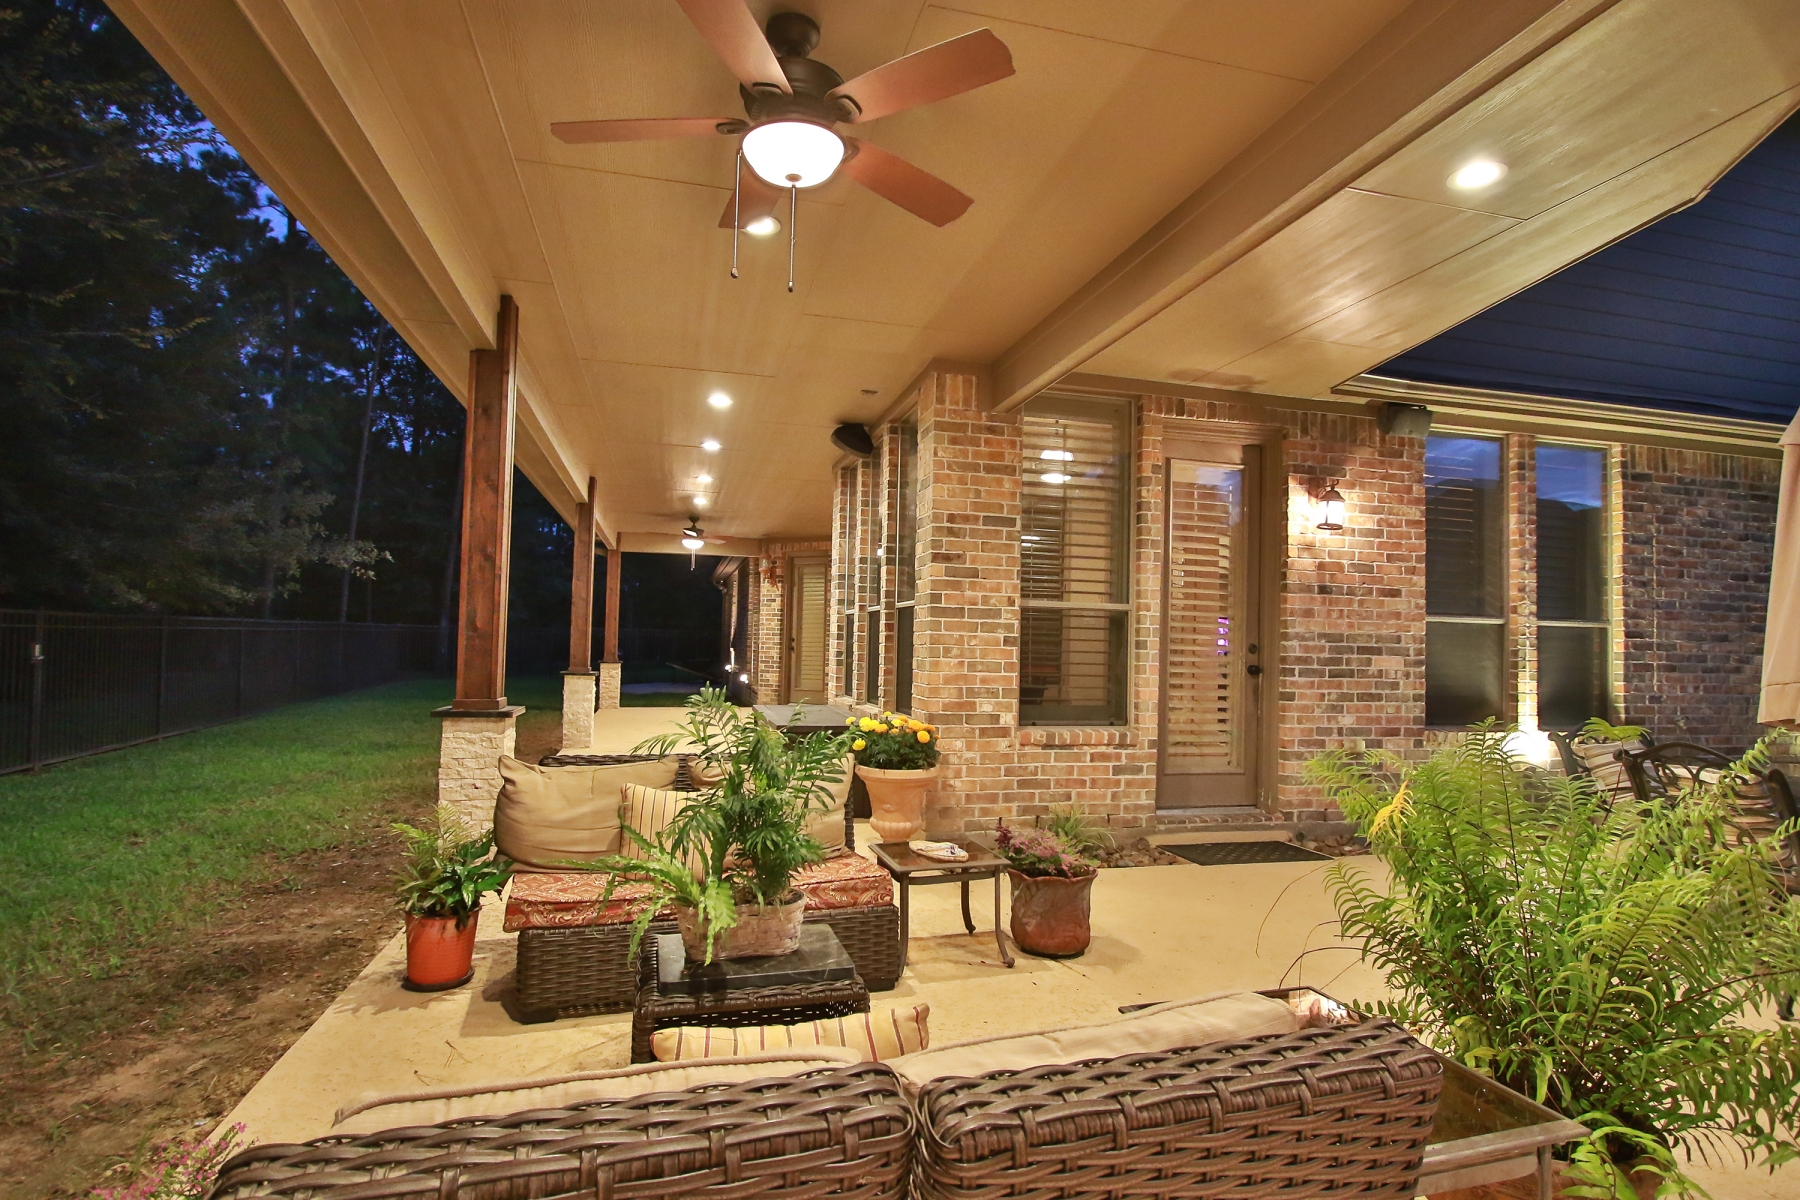 Outdoor Living Area with Covered Patio